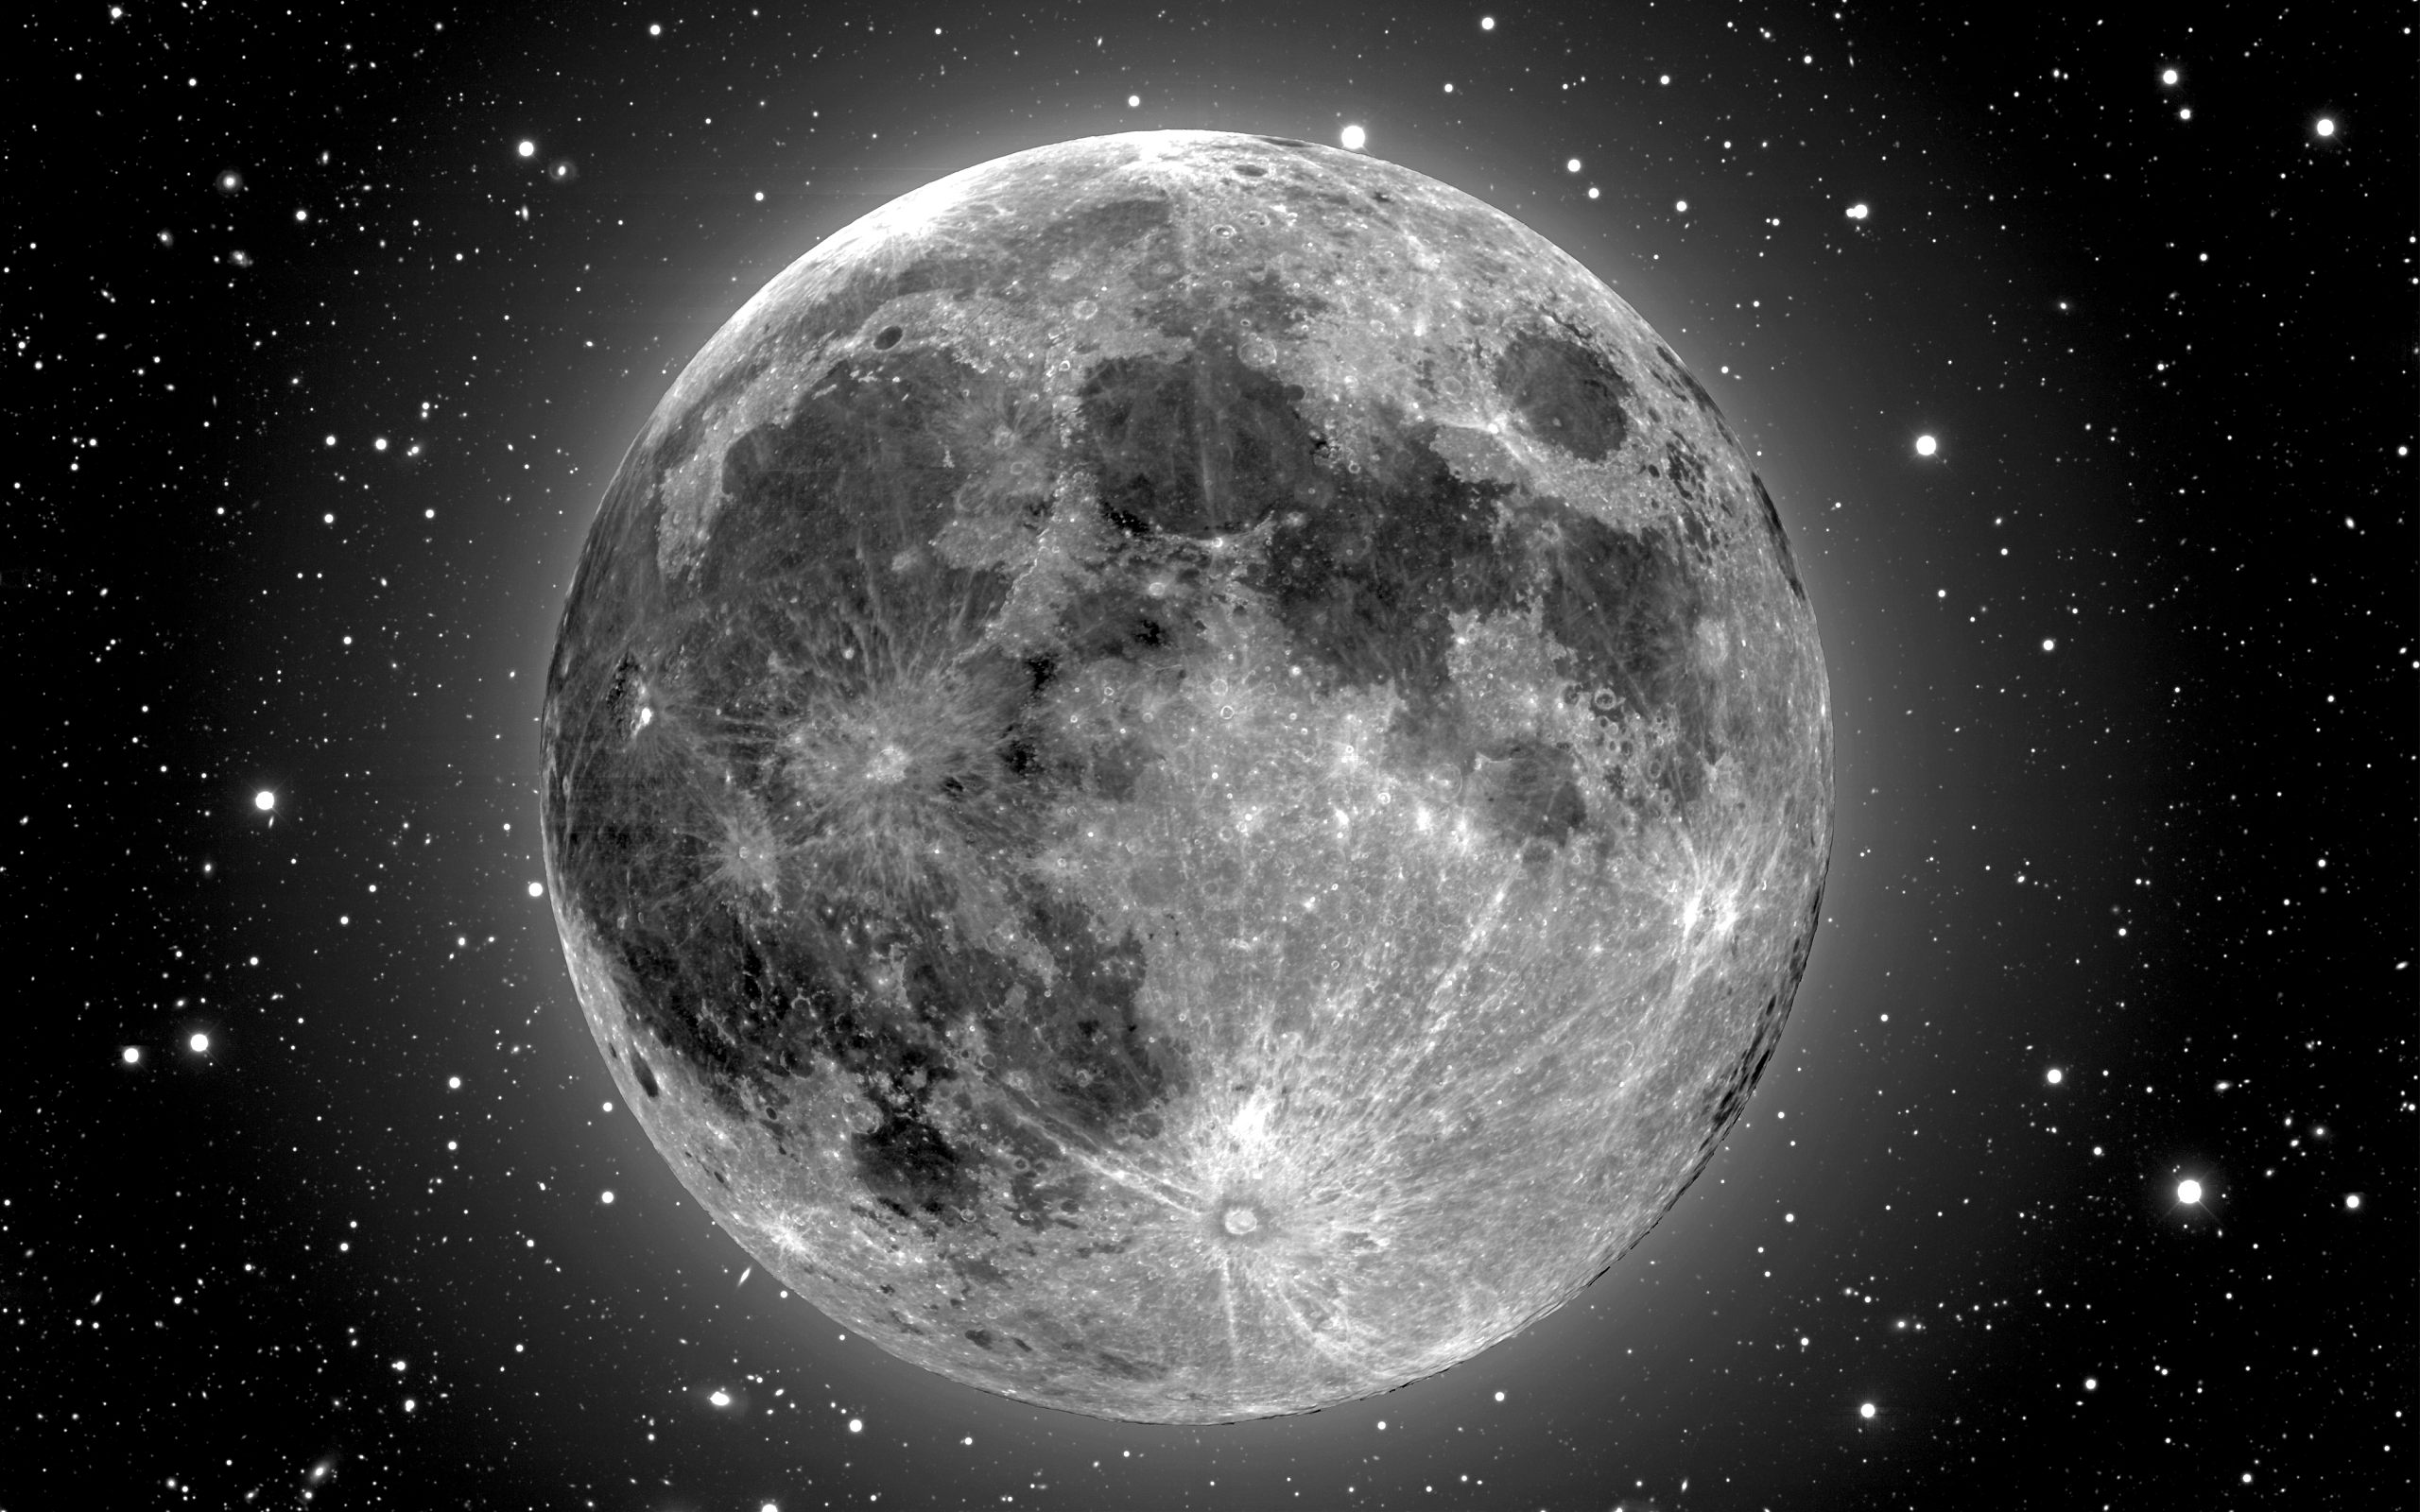 309 Moon Hd Wallpapers Background Images Wallpaper Abyss